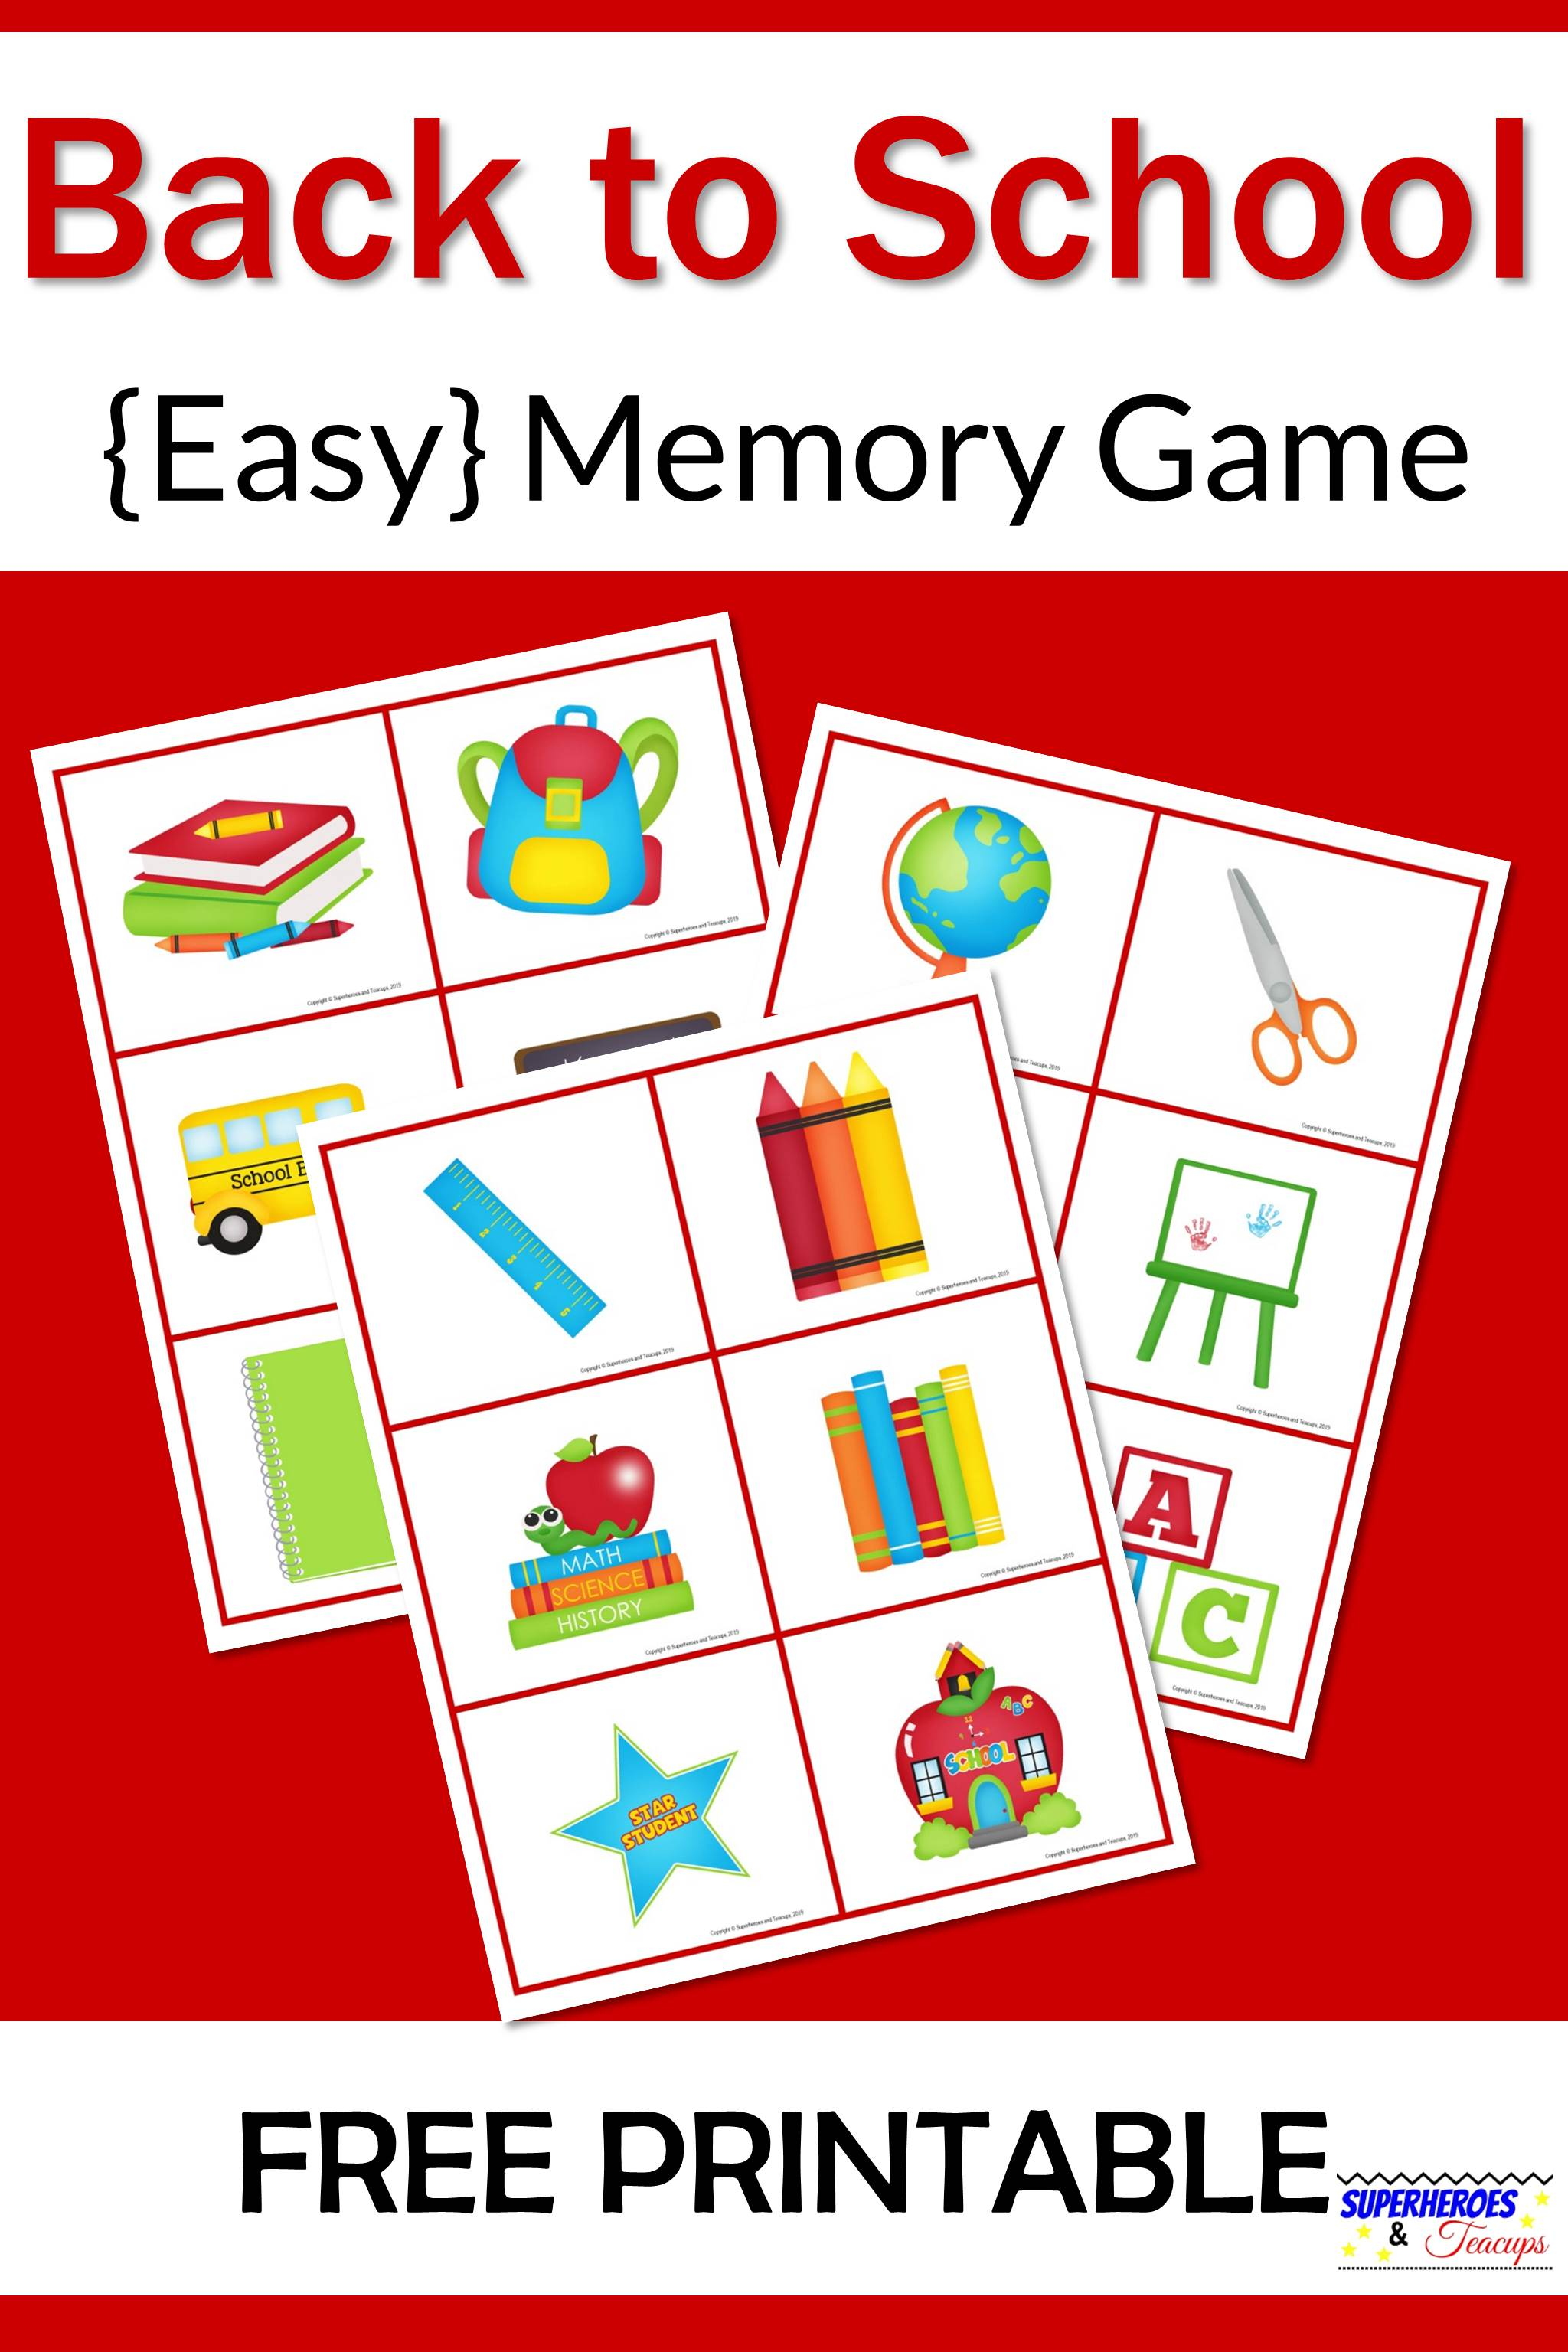 Back to School Memory Game Free Printable